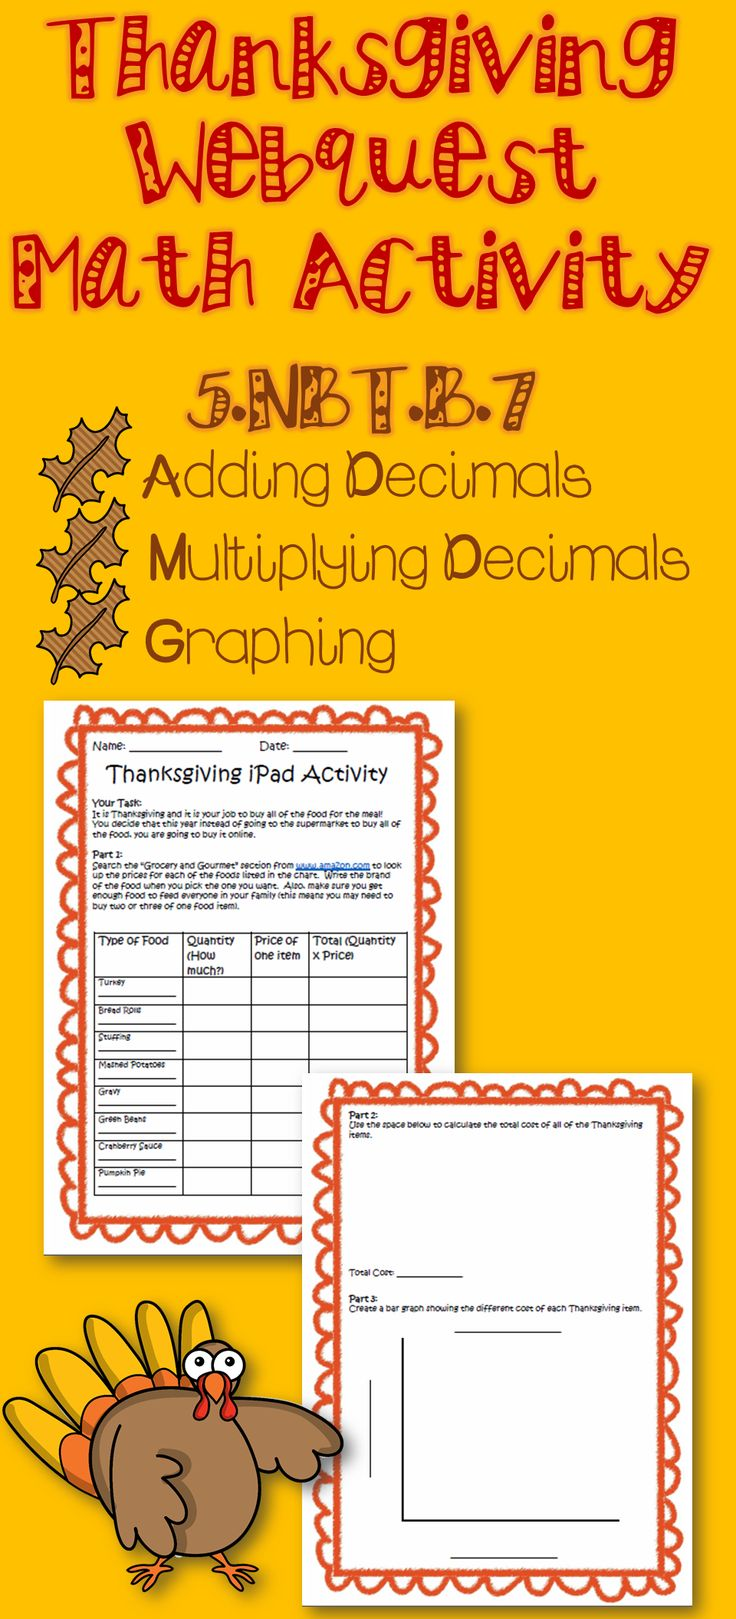 Worksheet Thanksgiving Graphing Worksheet Fun Worksheet Study Site